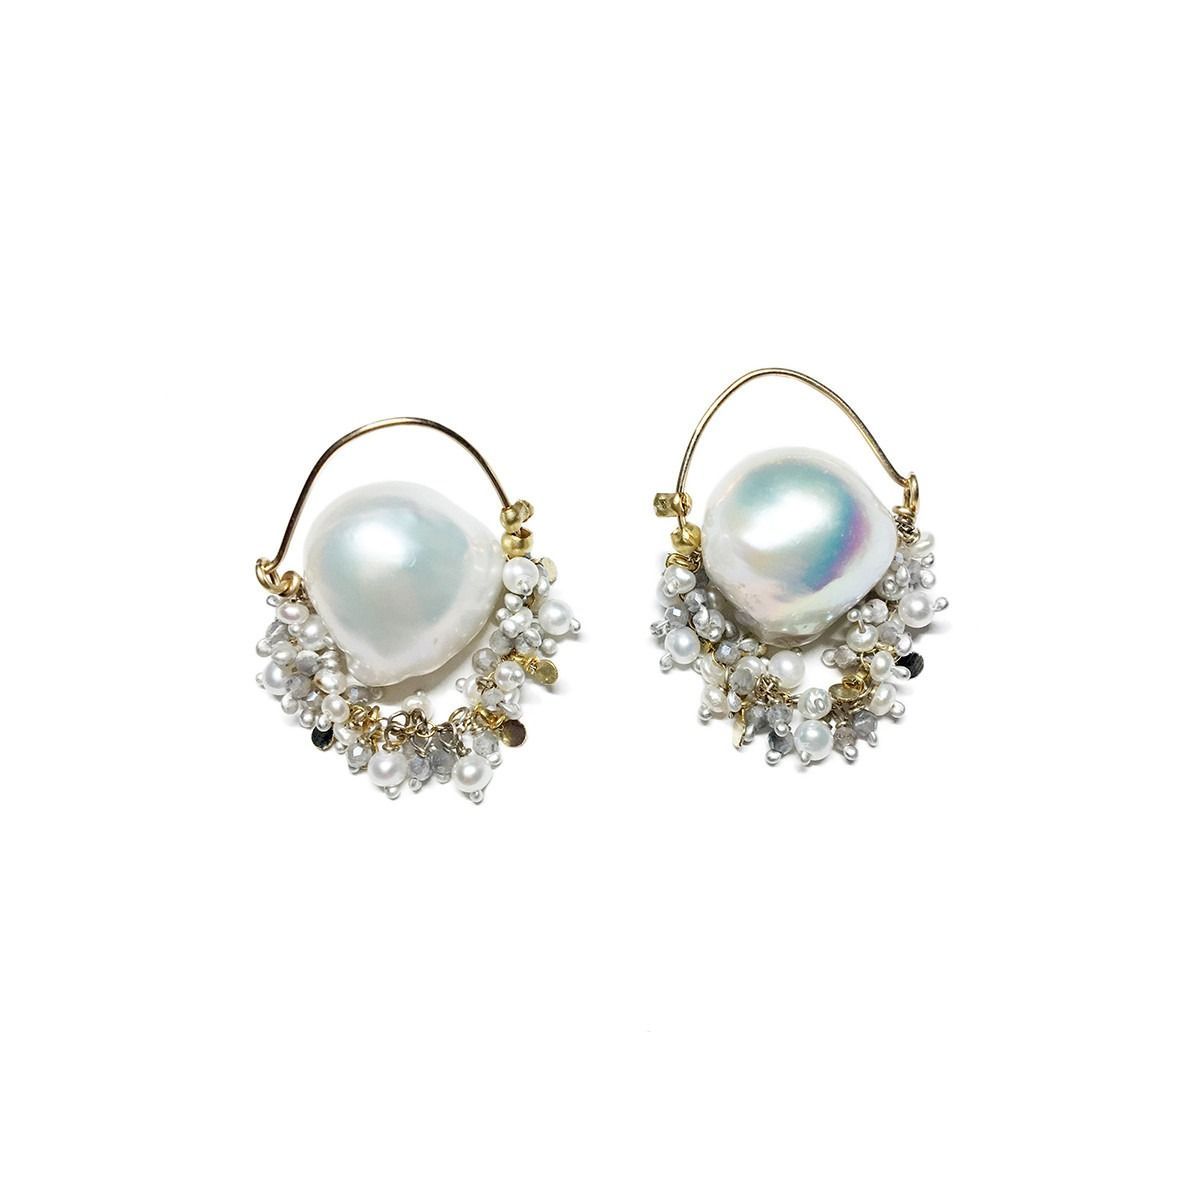 The Sea Foam Baroque Pearl Hoop Earrings Come From High End Jewellery Brand Sage Belber Jewelry A Of Small White Pearls Sparkling Pale Grey